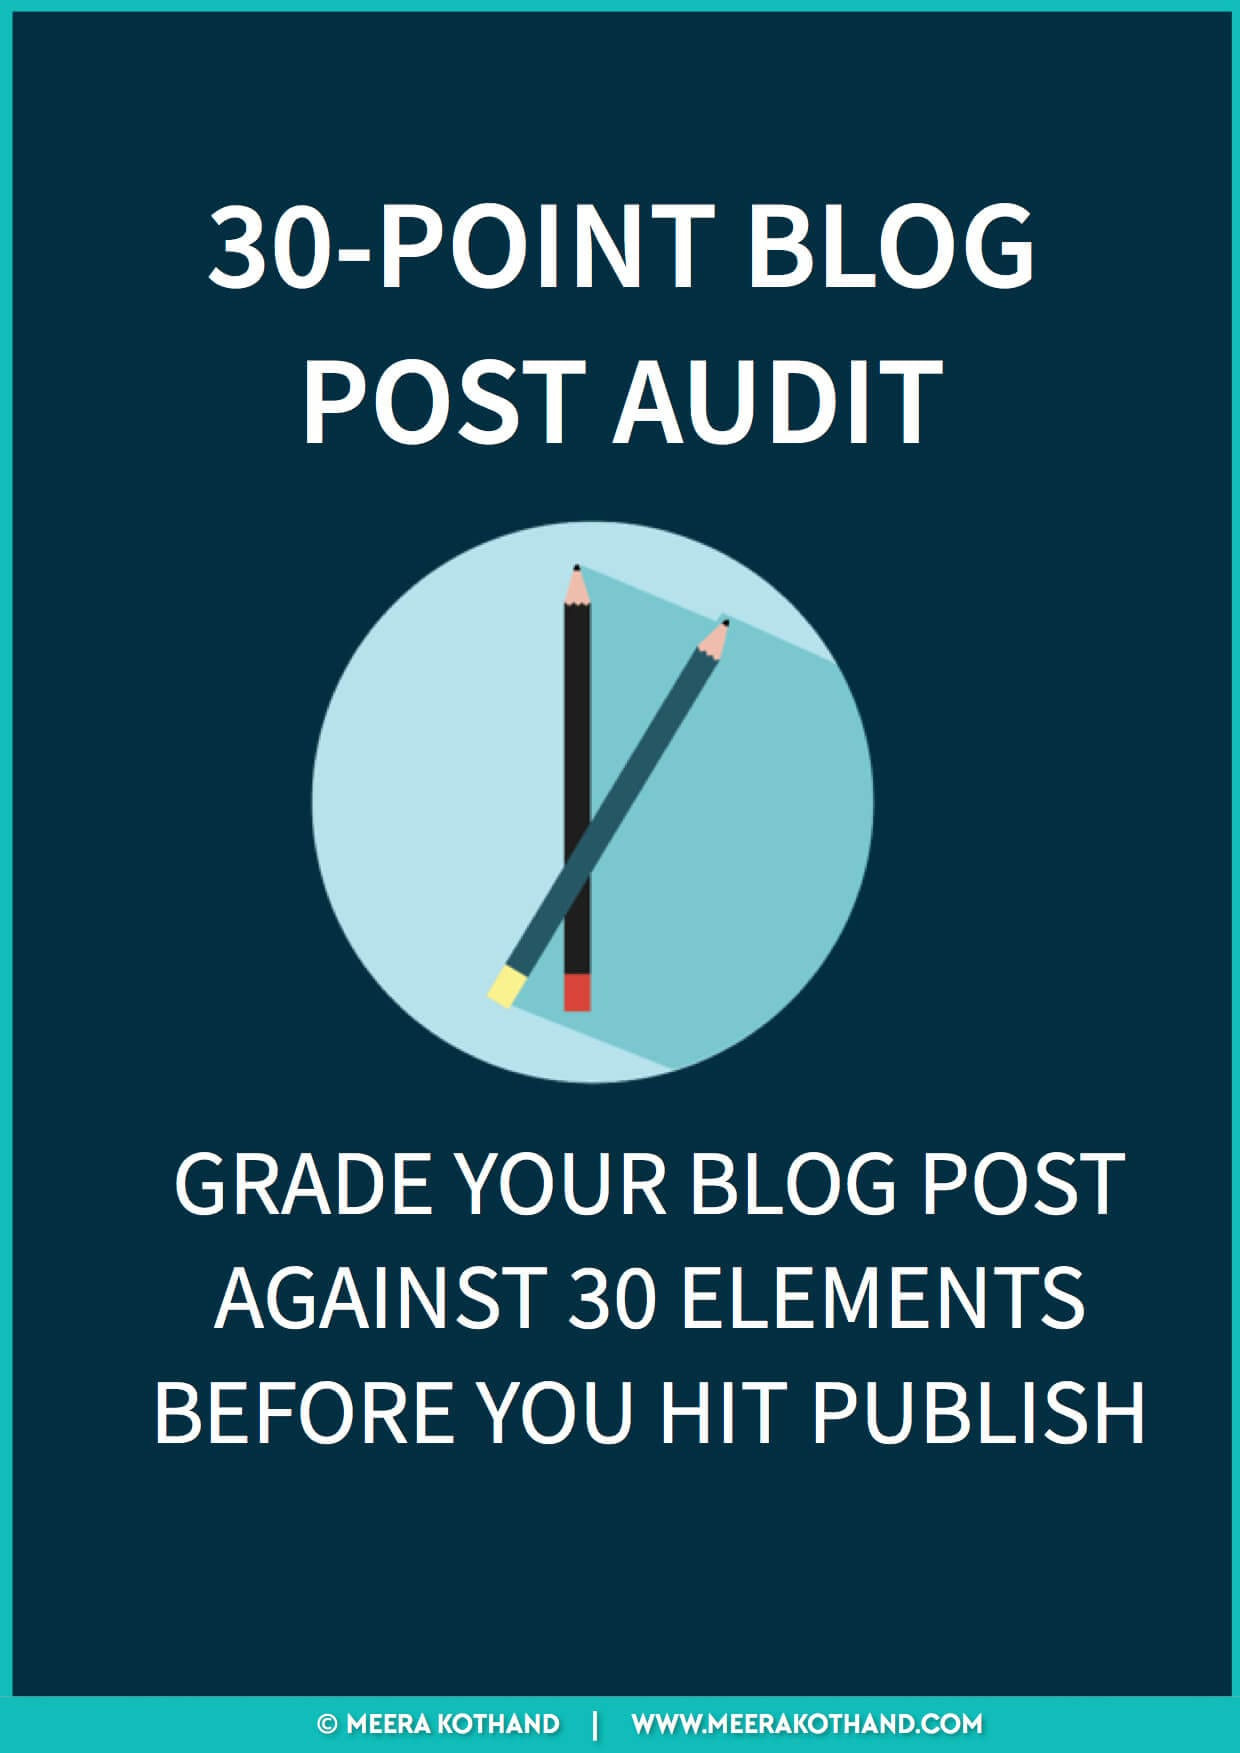 [Checklist] 30-POINT BLOG POST AUDIT